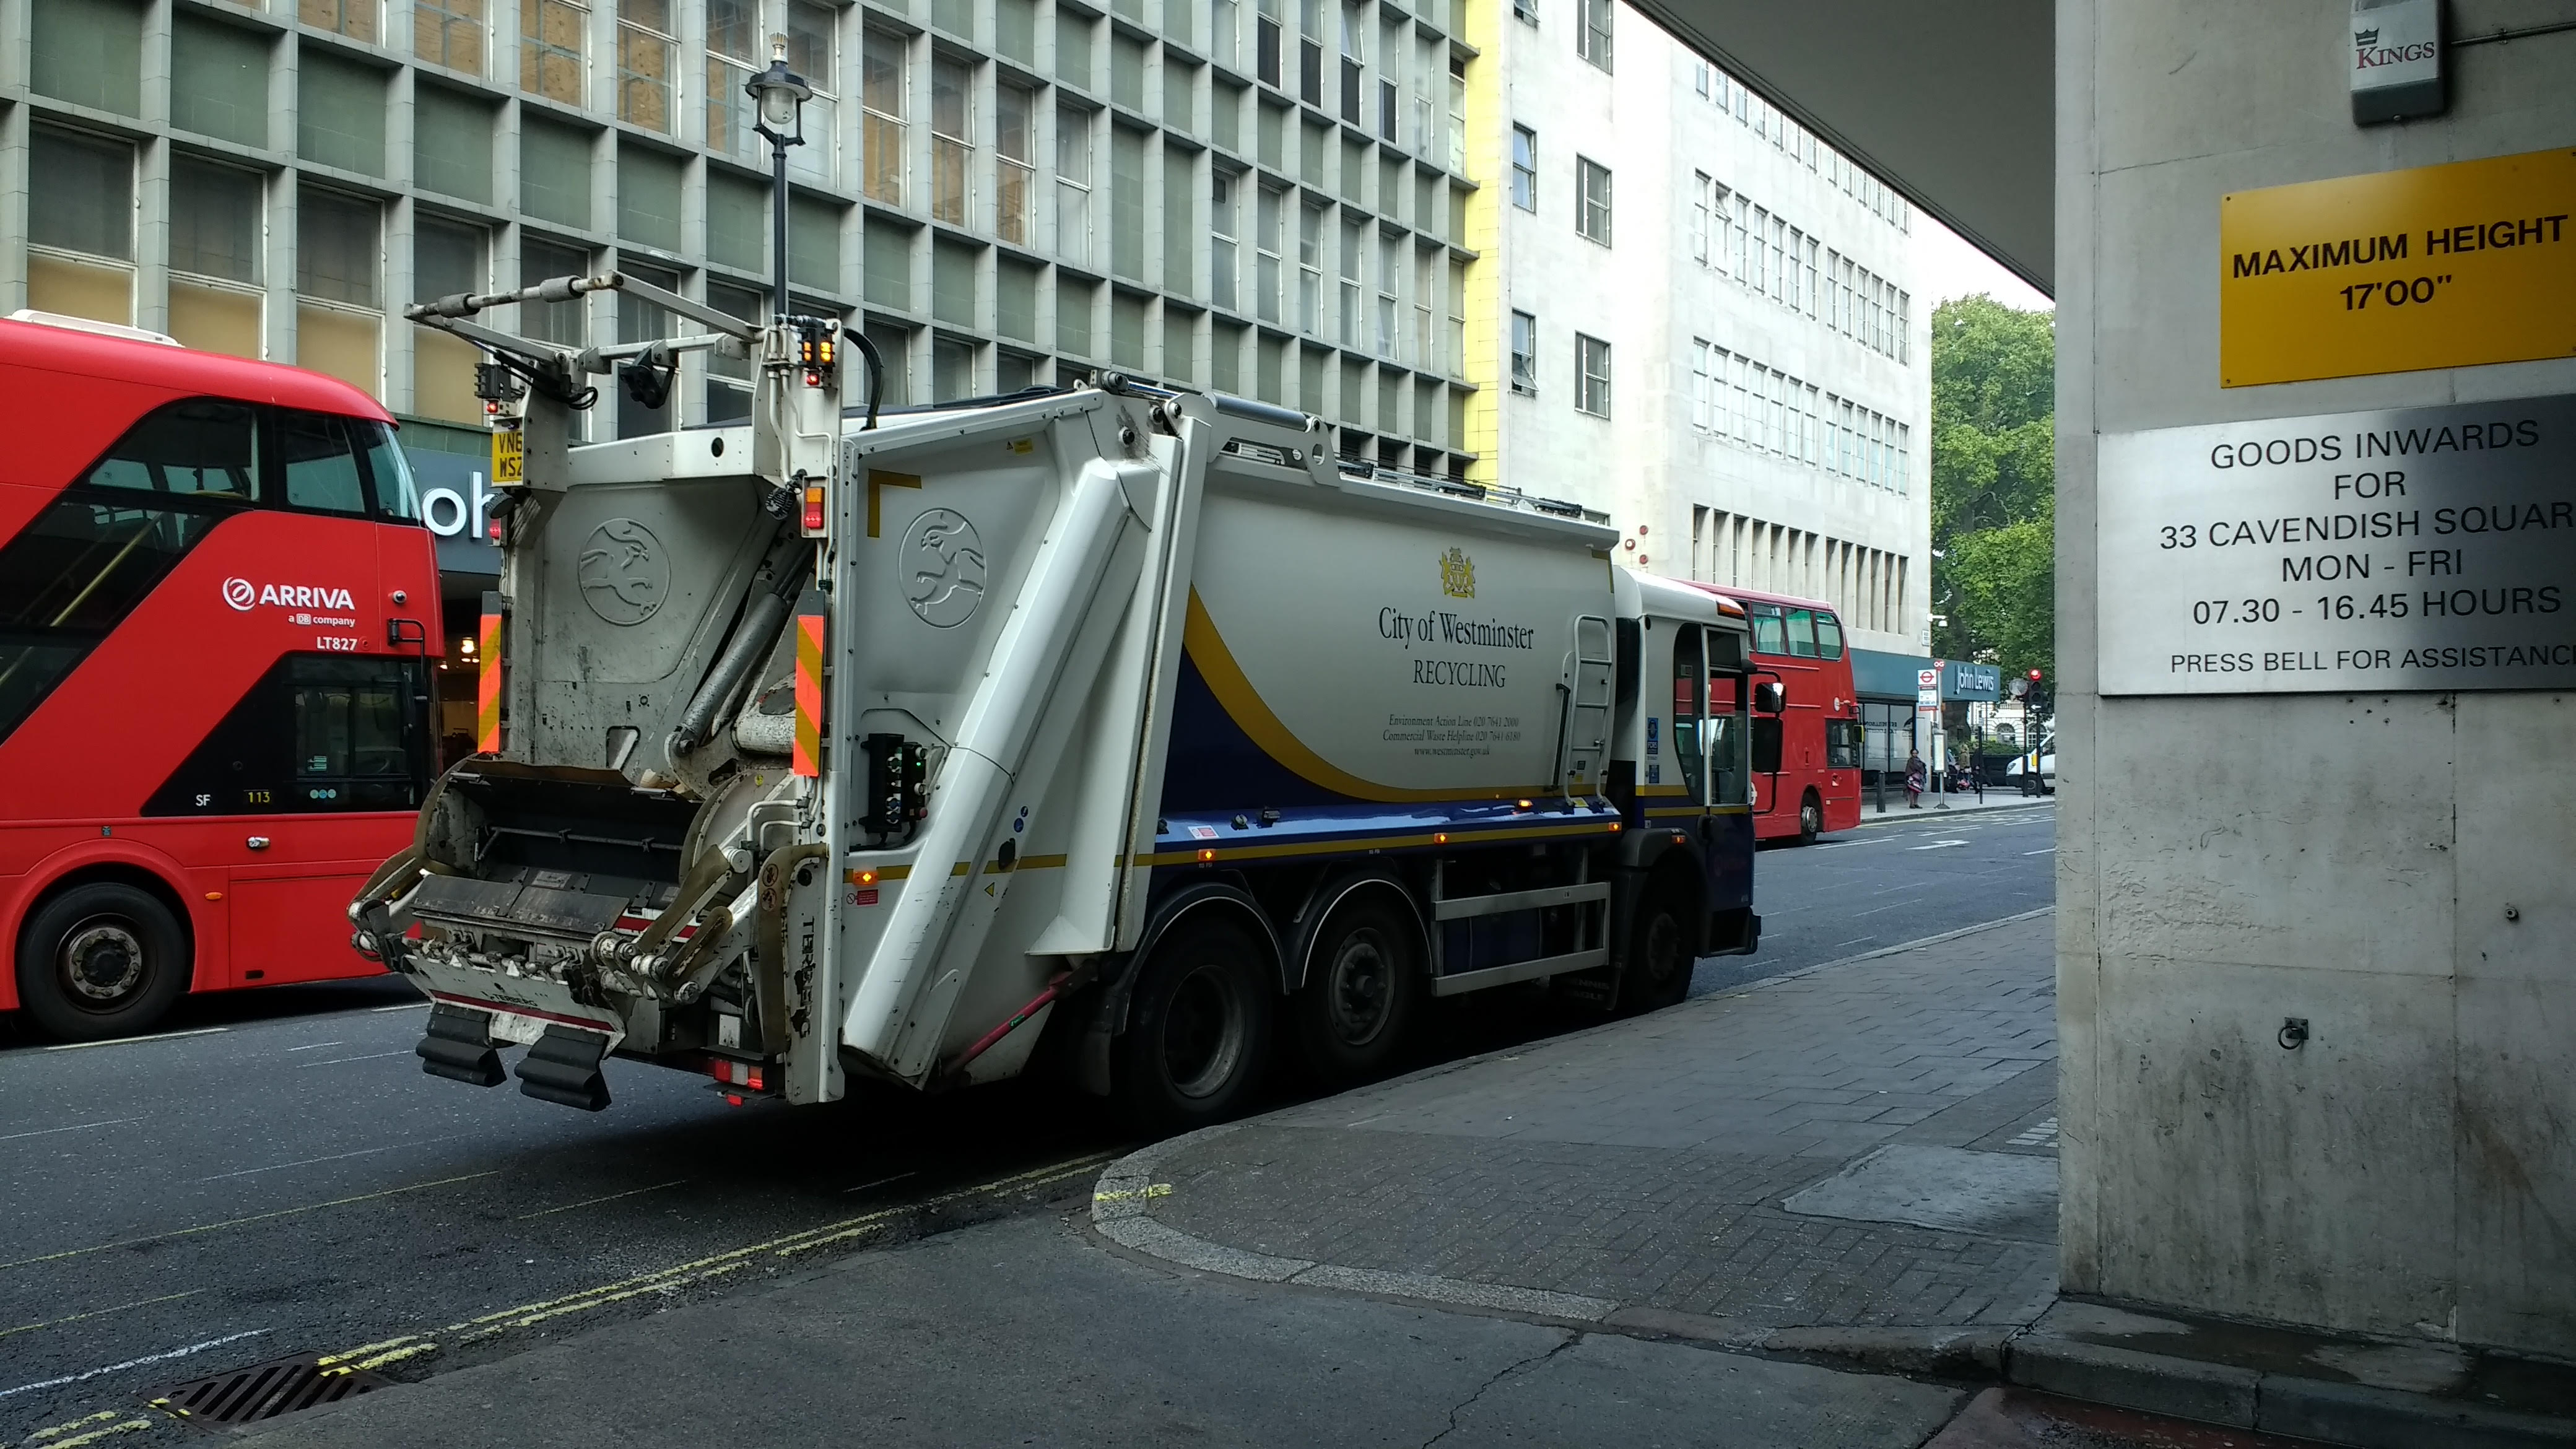 recycling in london